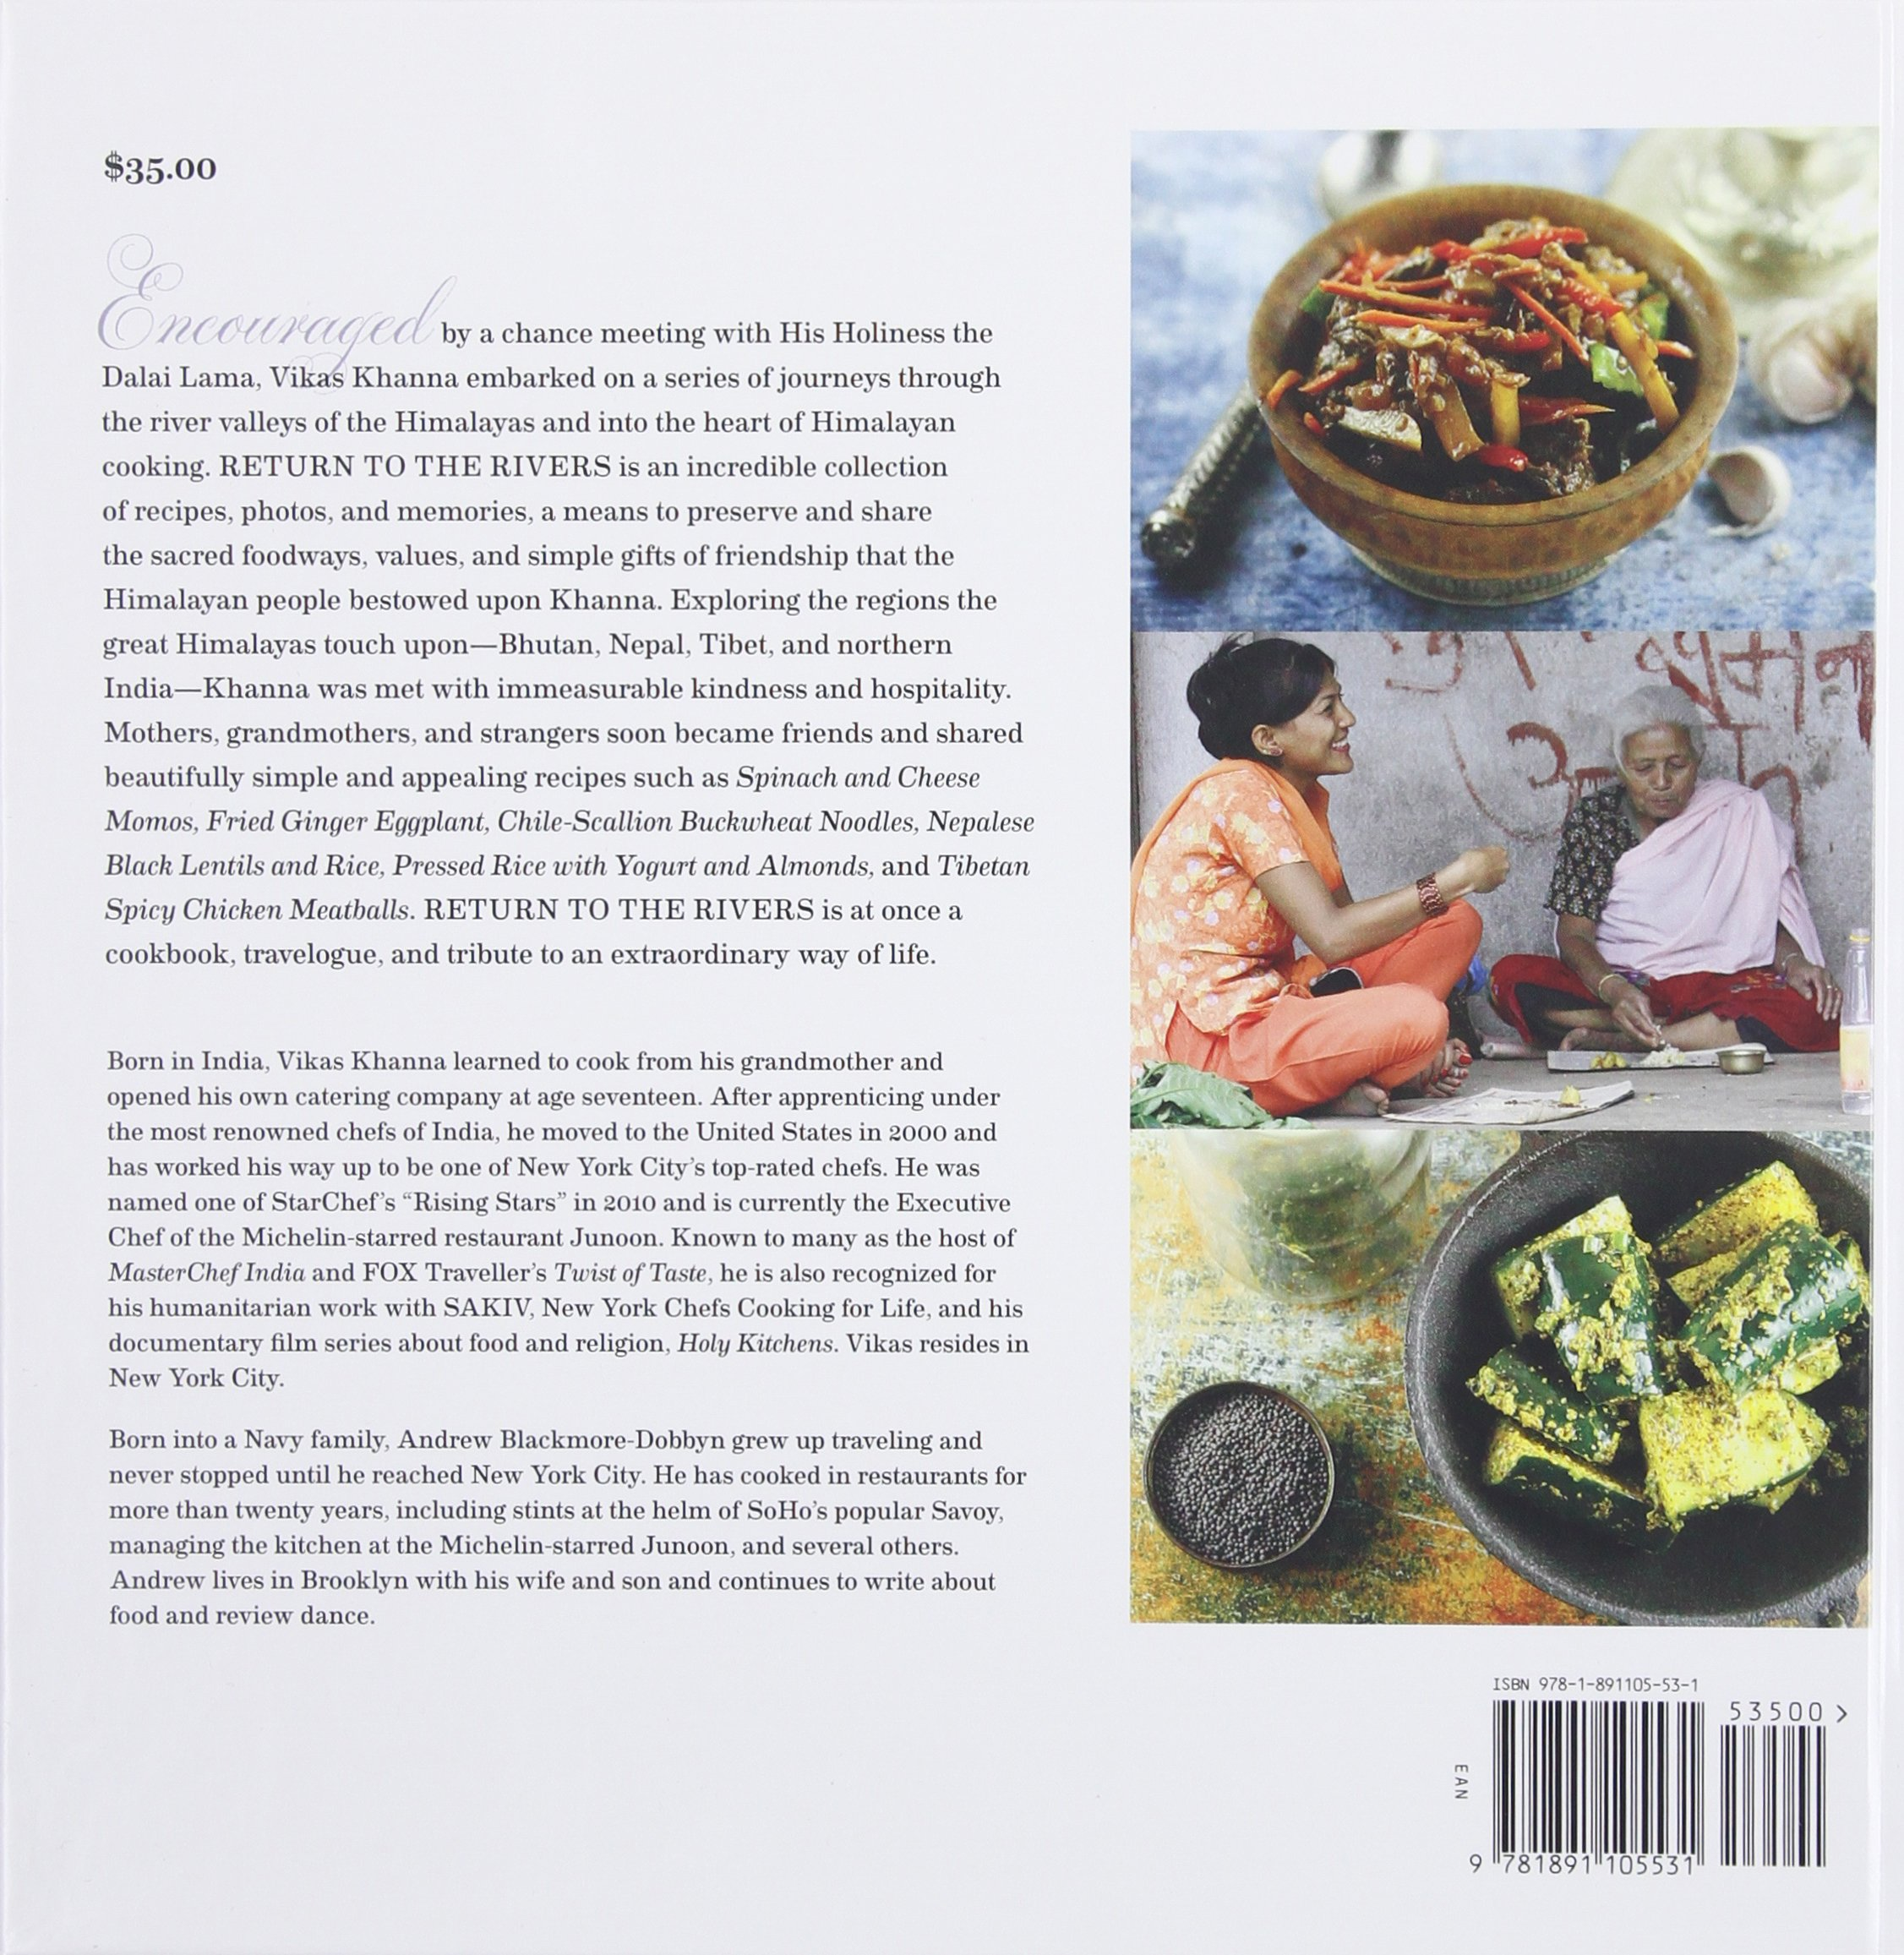 Return to the Rivers: Recipes and Memories of the Himalayan River ...